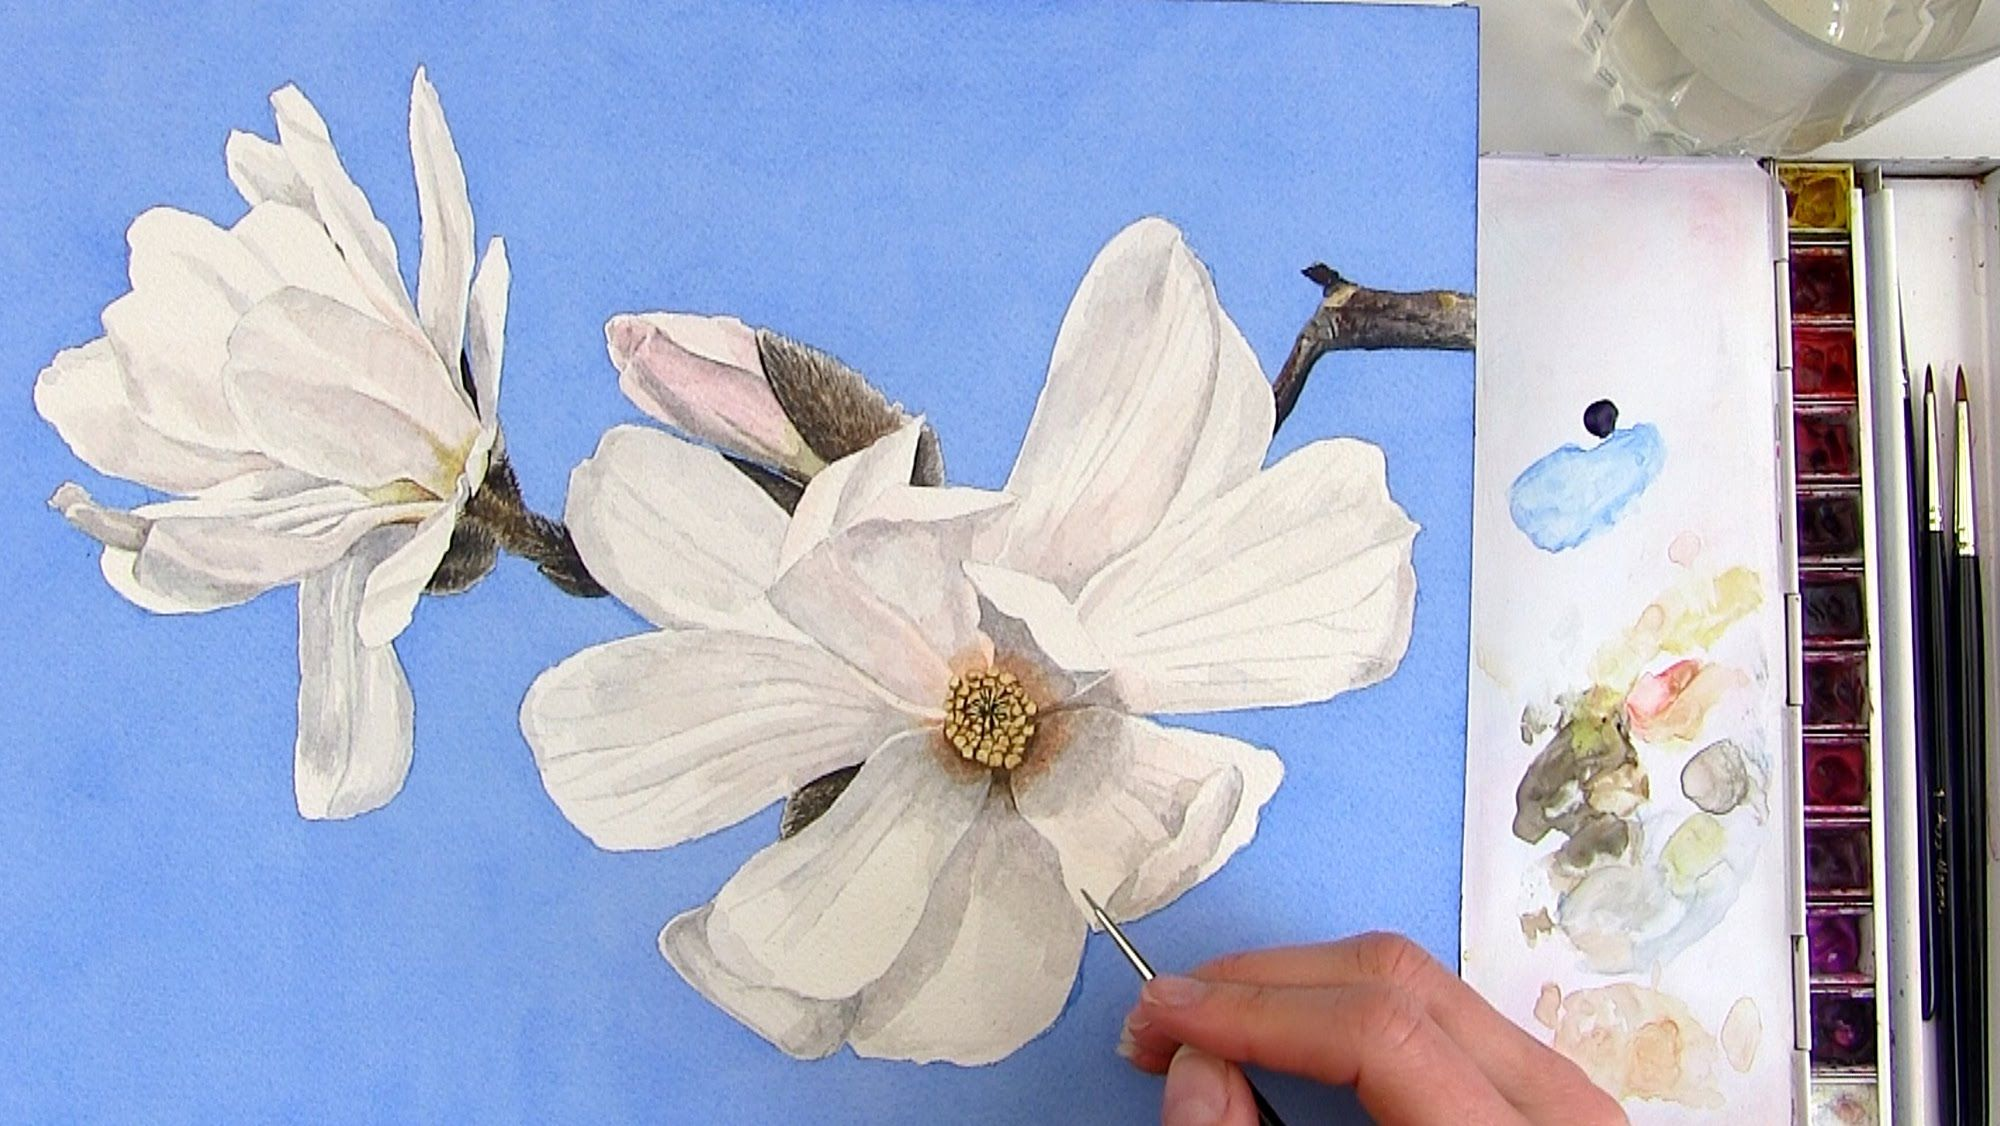 How To Paint A Realistic White Magnolia Flower In Watercolor